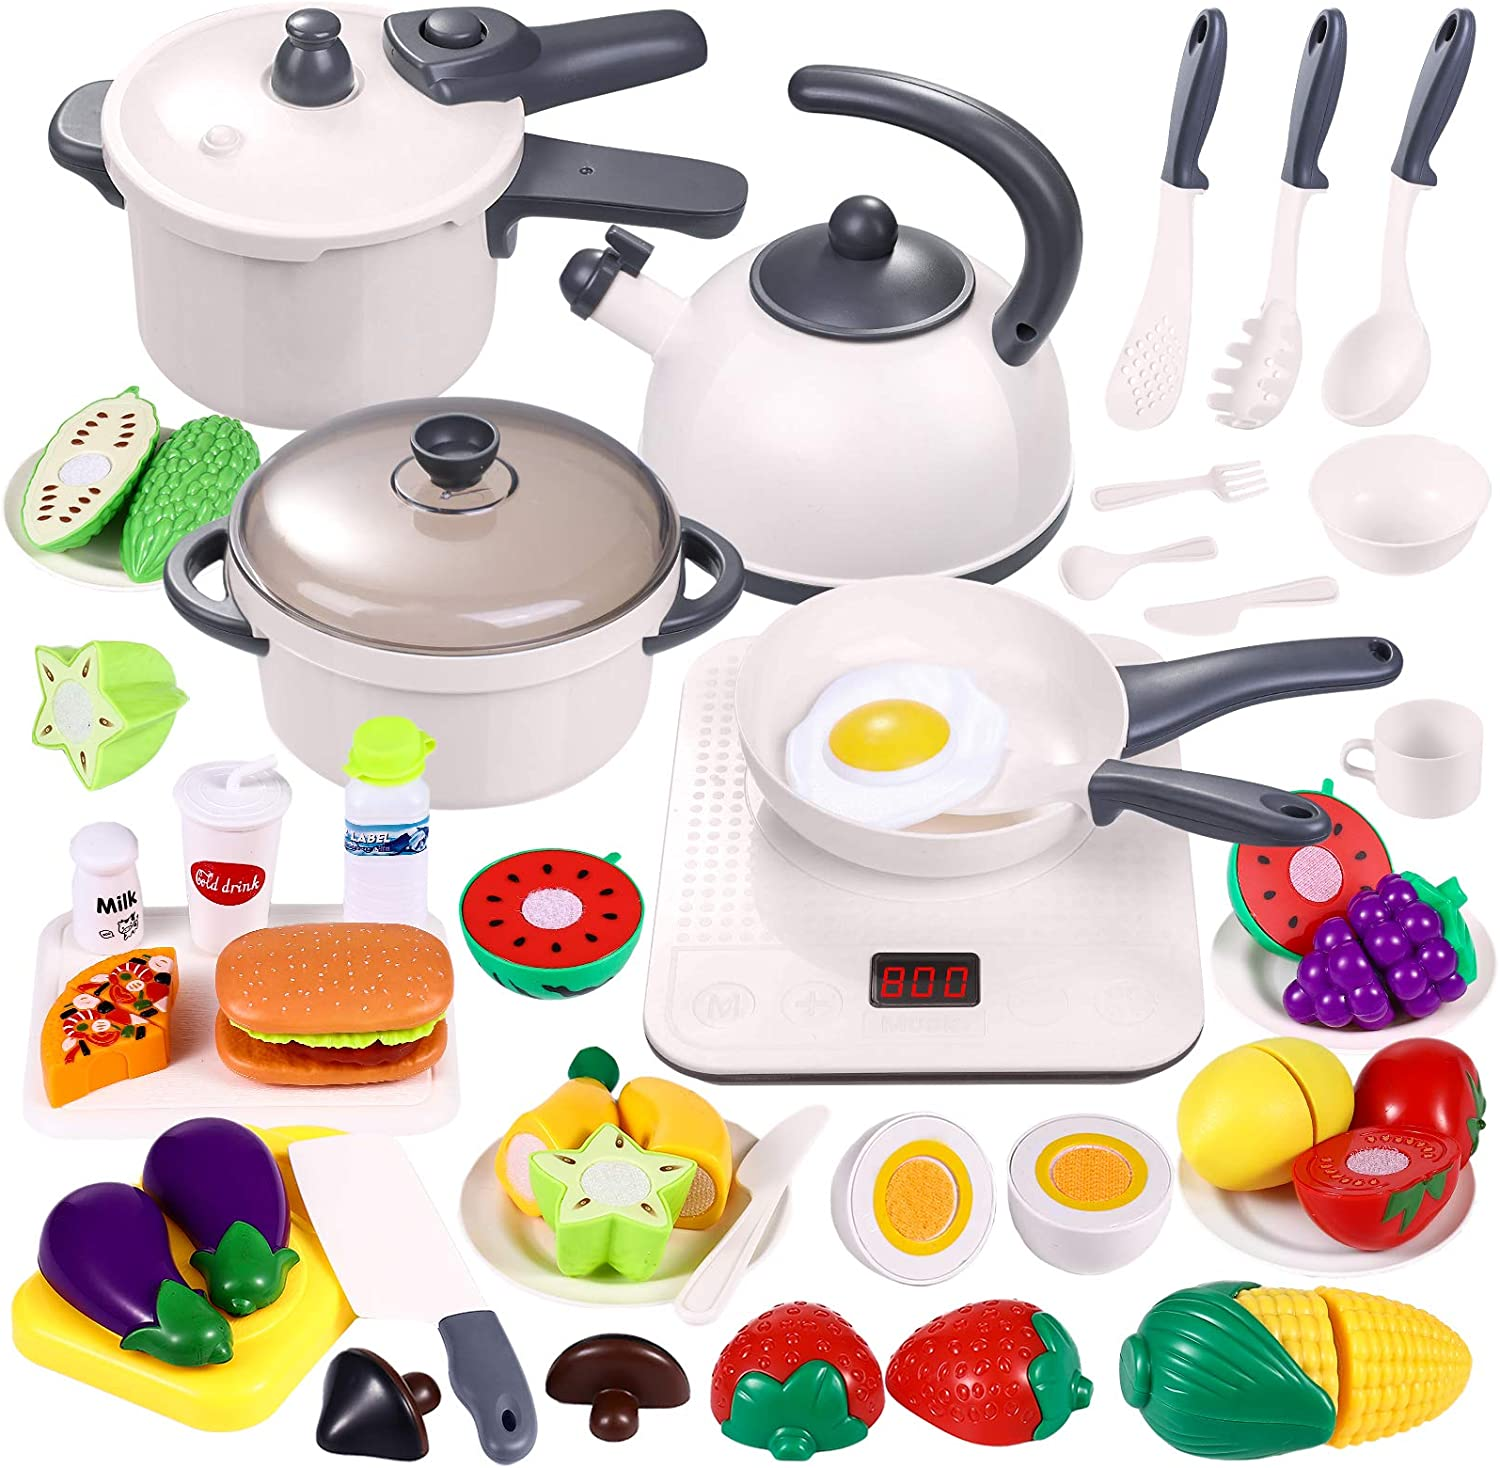 46PCS Play Kitchen Set for Kids - Cooking Set with Electronic Induction Cooktop, Pots and Pans Playset, Cutting Play Food and Utensils Accessories - Pretend Play Kitchen Toys for Toddlers Baby Girls